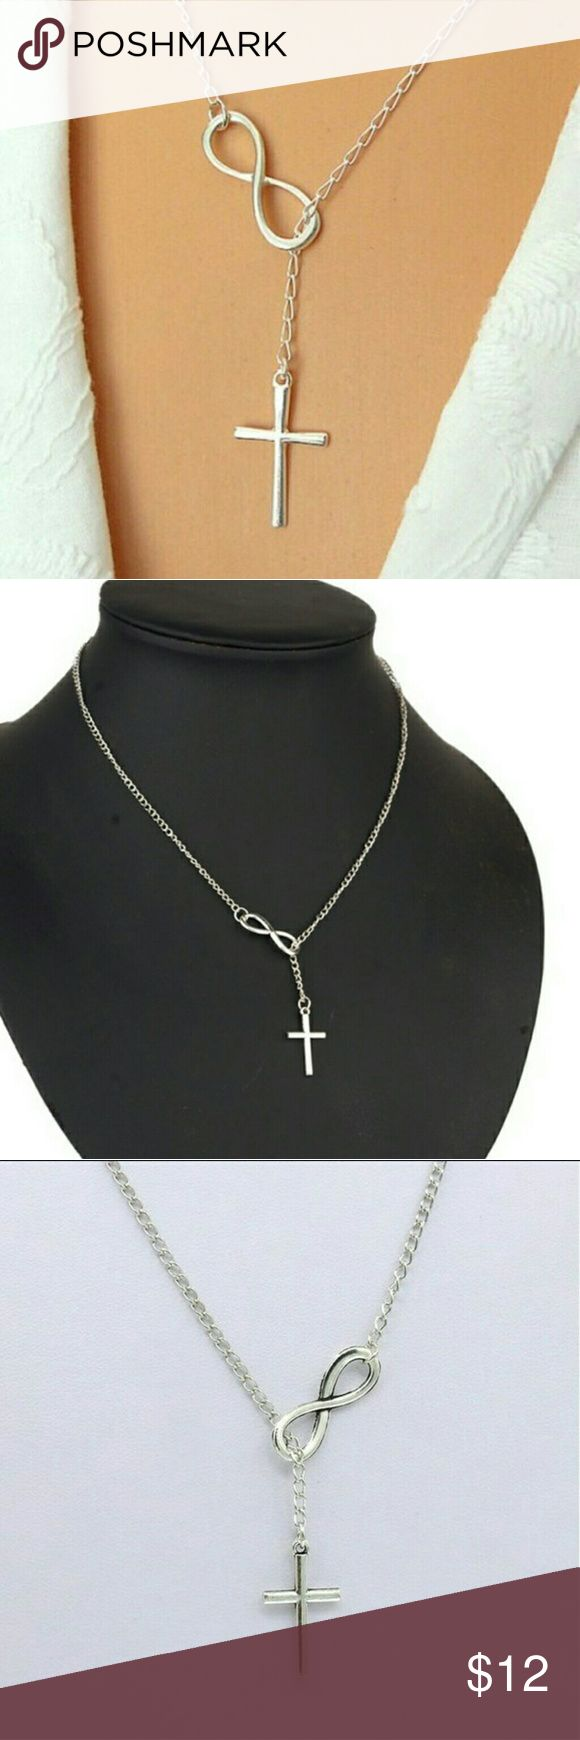 Infinity Cross Necklace  Silver Infinity Cross Necklace .925 Sterling Silver simply beautiful.  You can wear it everyday or on special occasions.  Great gift any age girl would love.  20 inch chain luxury Brand Jewelry Necklaces